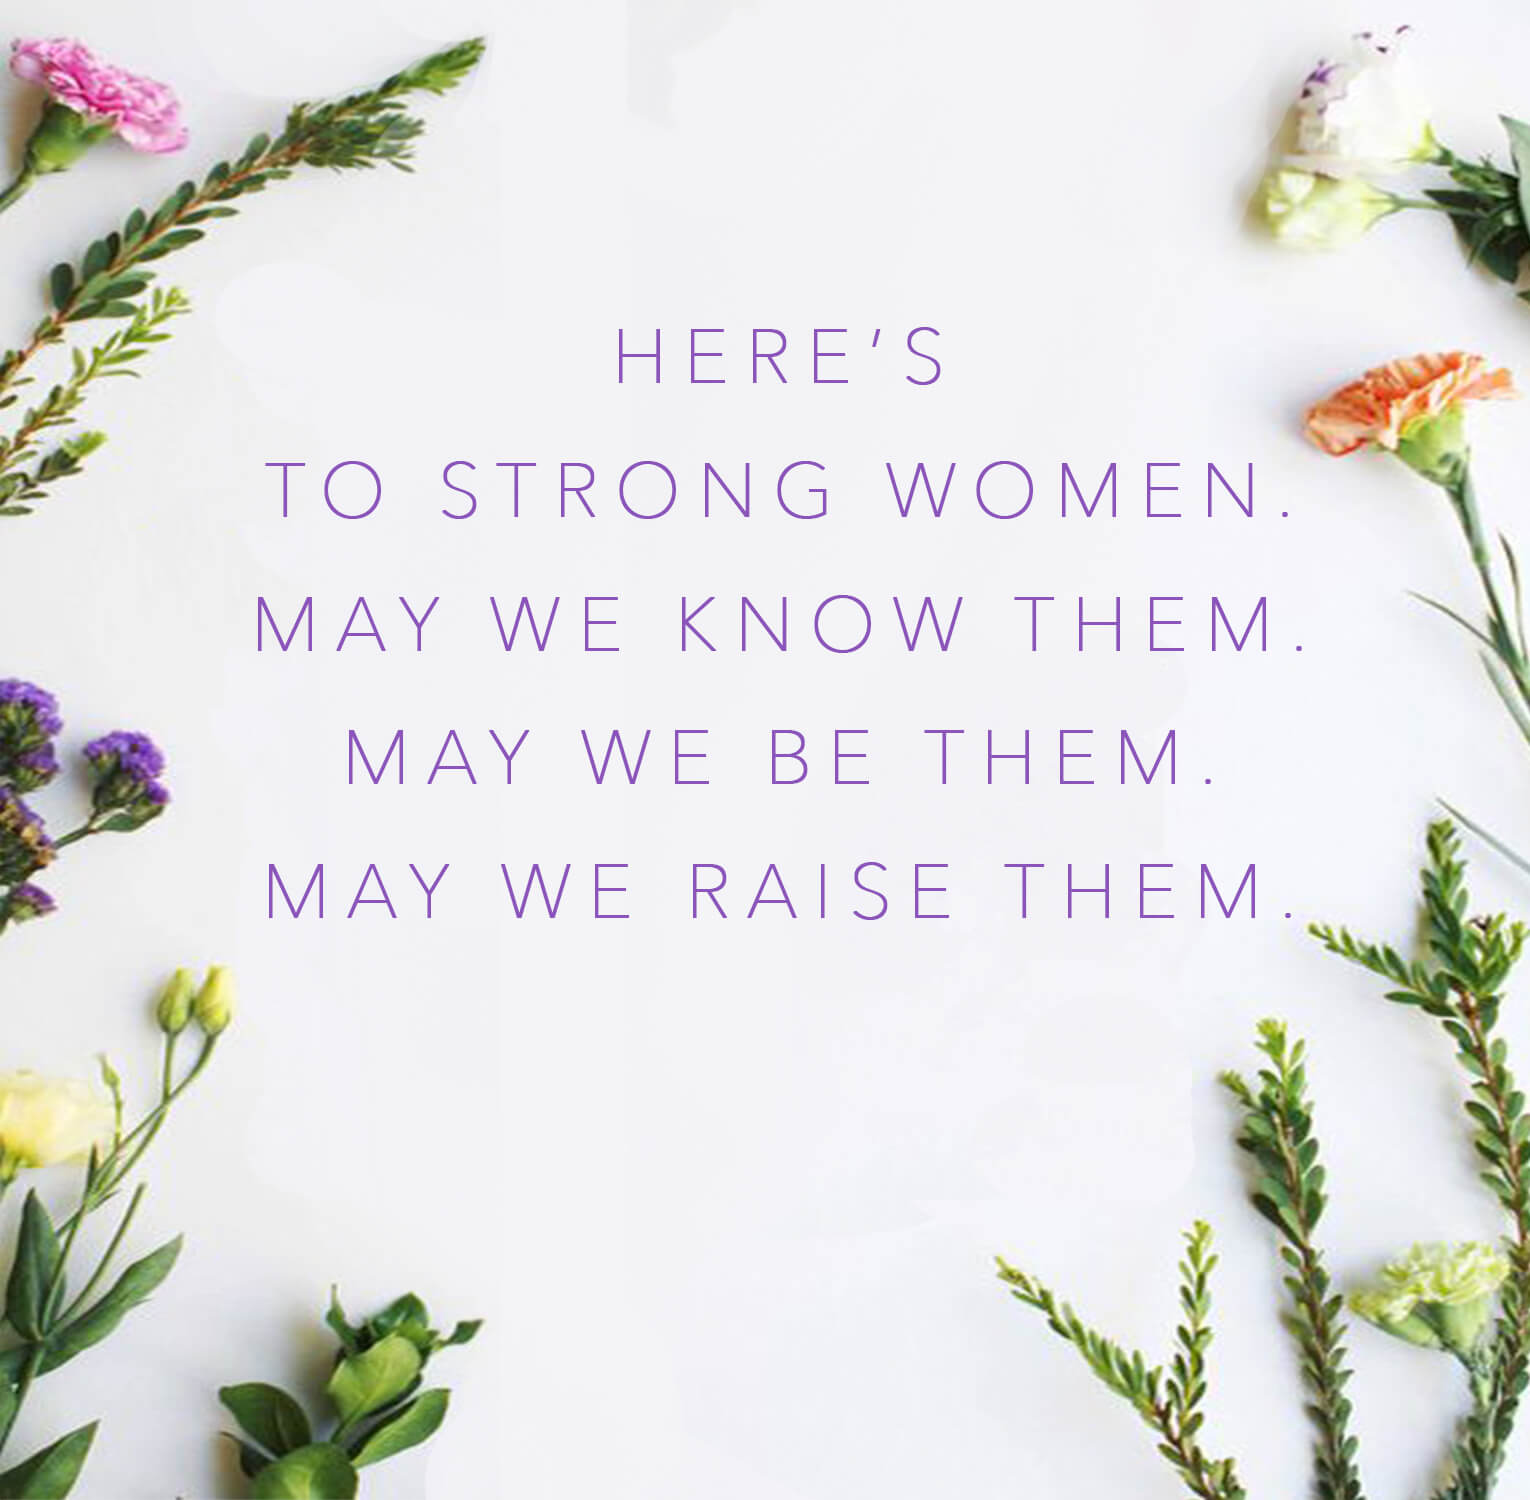 FREE PRINTABLE INTERNATIONAL WOMEN'S DAY QUOTE